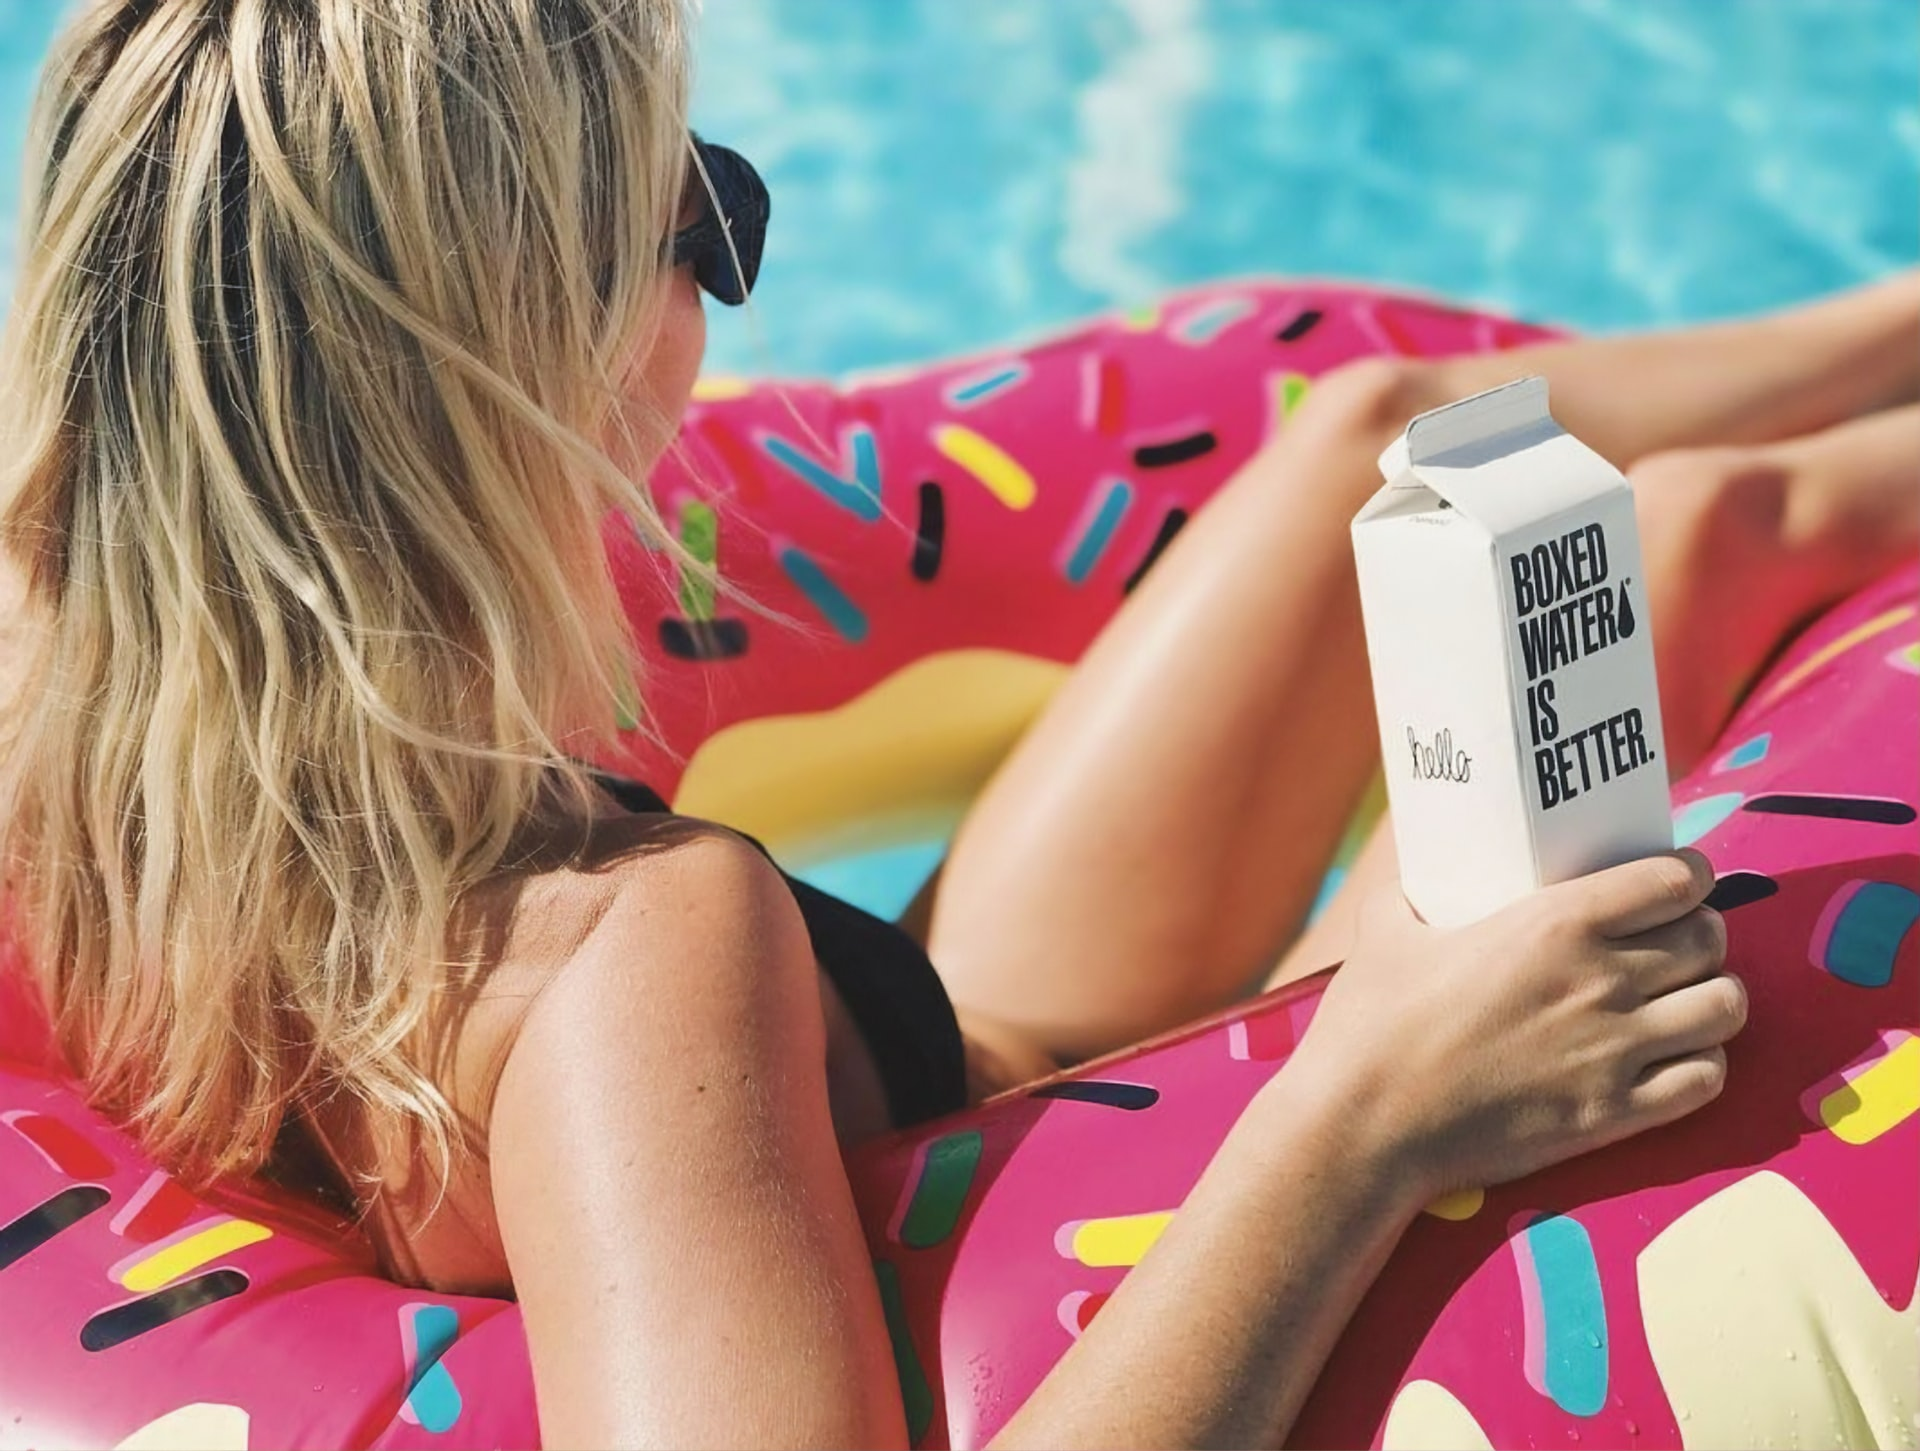 relaxing on a pool float boxed water is better